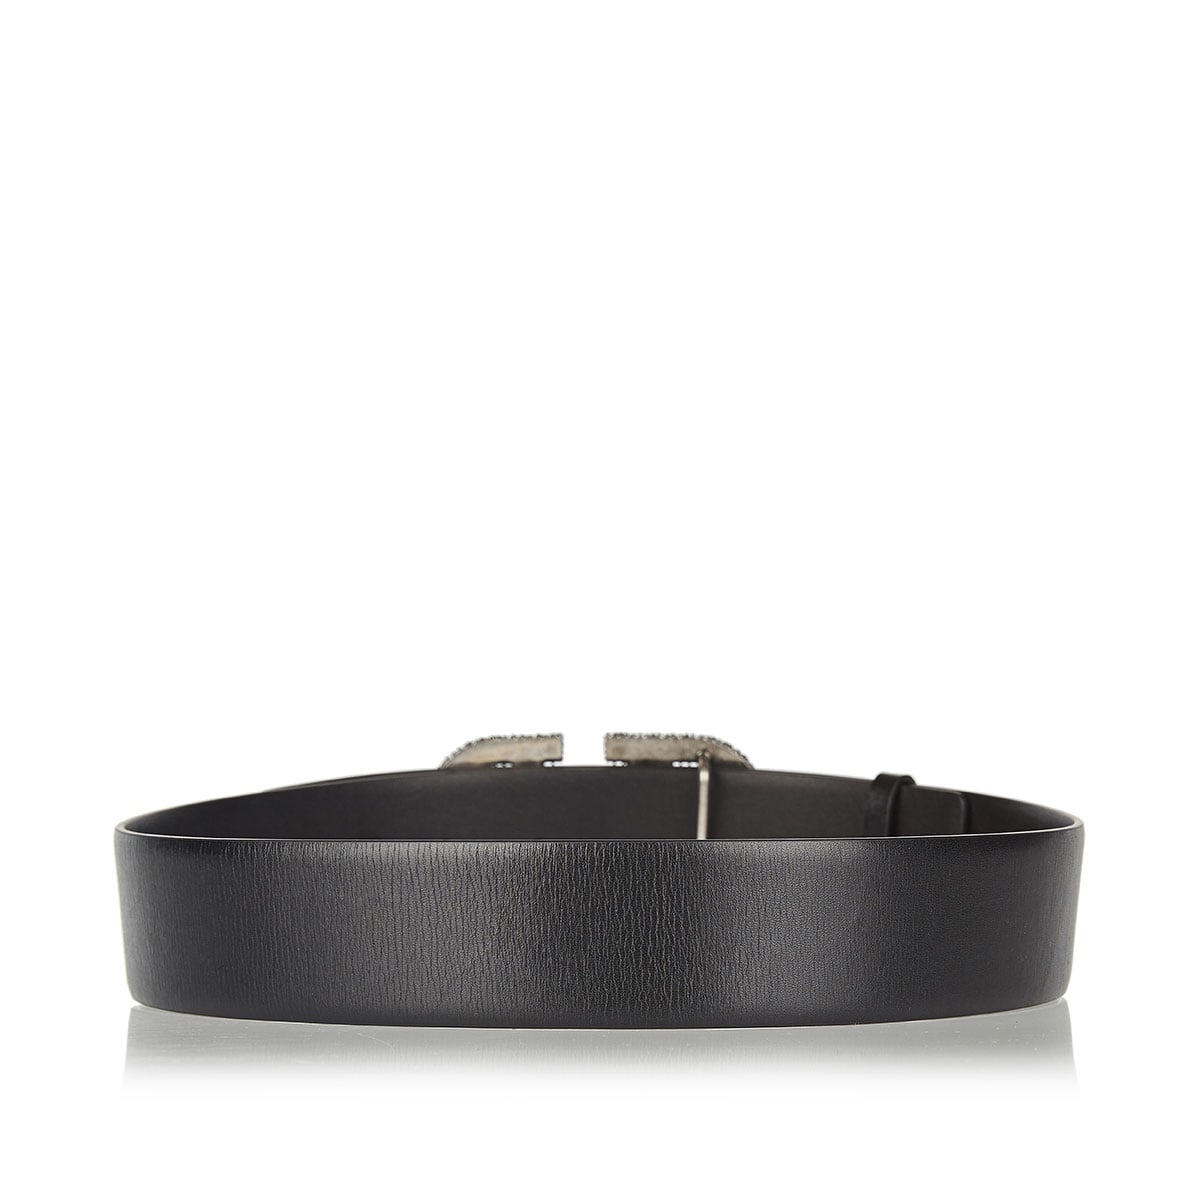 V-logo embellished leather belt